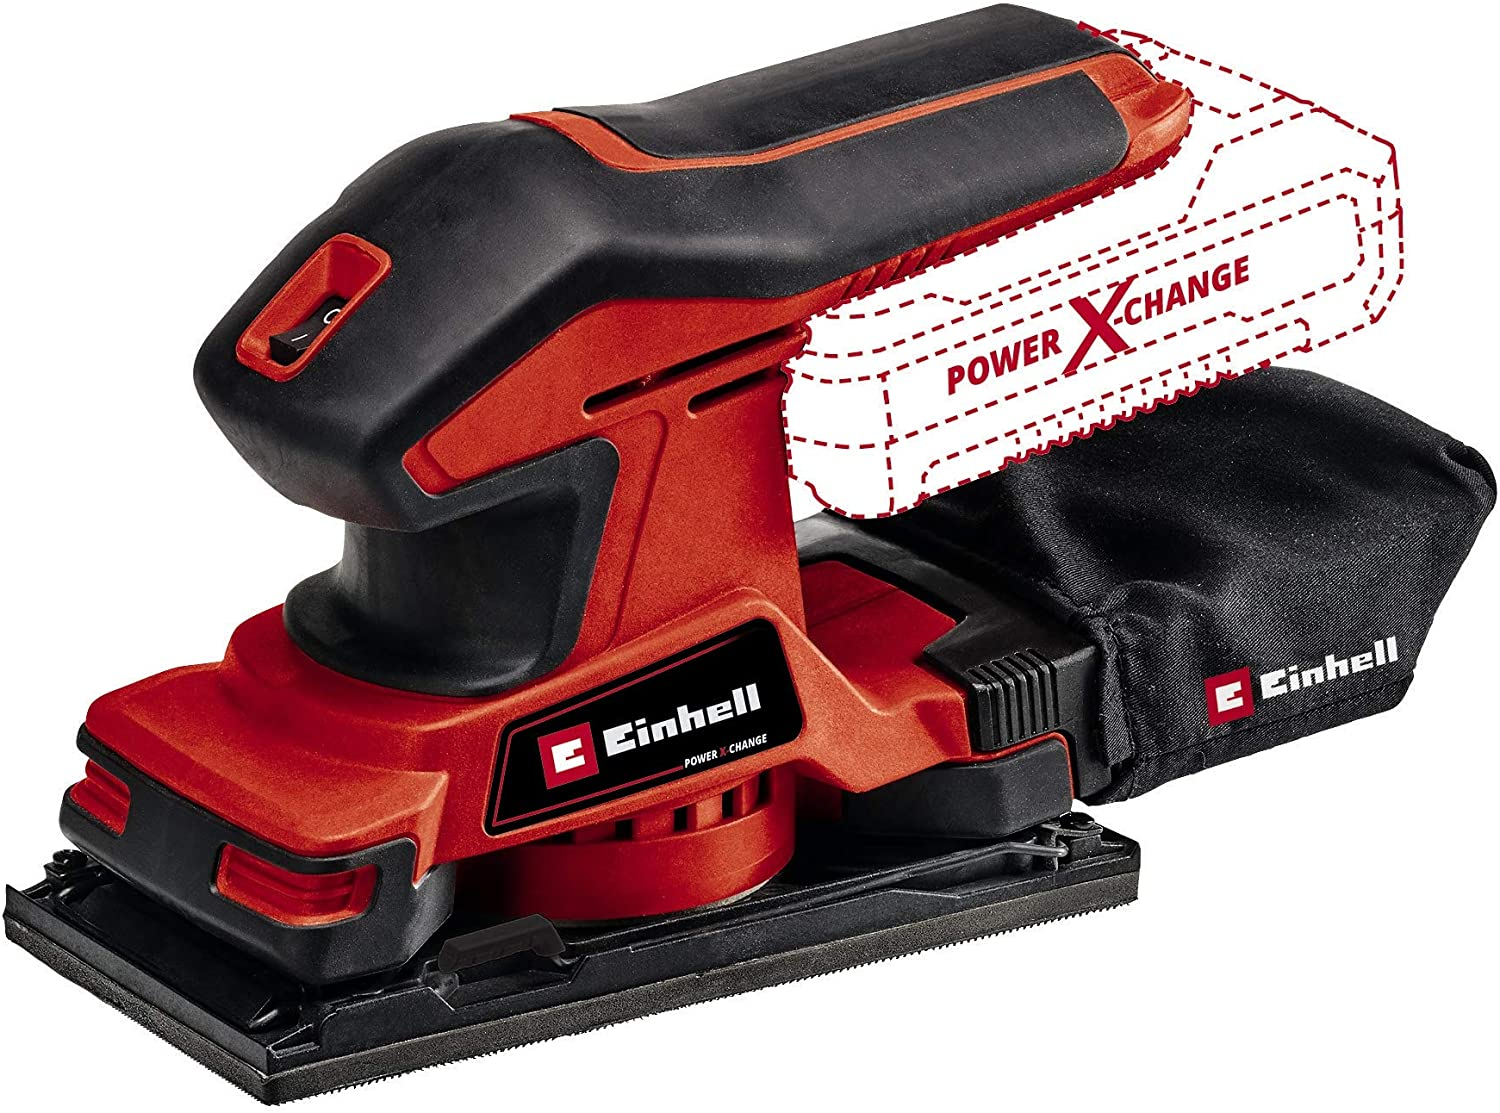 Einhell Cordless Orbital Sander TC-OS 18 187 Li-Solo Power X-Change (18 V, Lithium-ion, Micro Hook-and-Loop Fastener, Grip Surfaces with Soft Grip, Incl. 1x Sheet of Abrasive Paper)